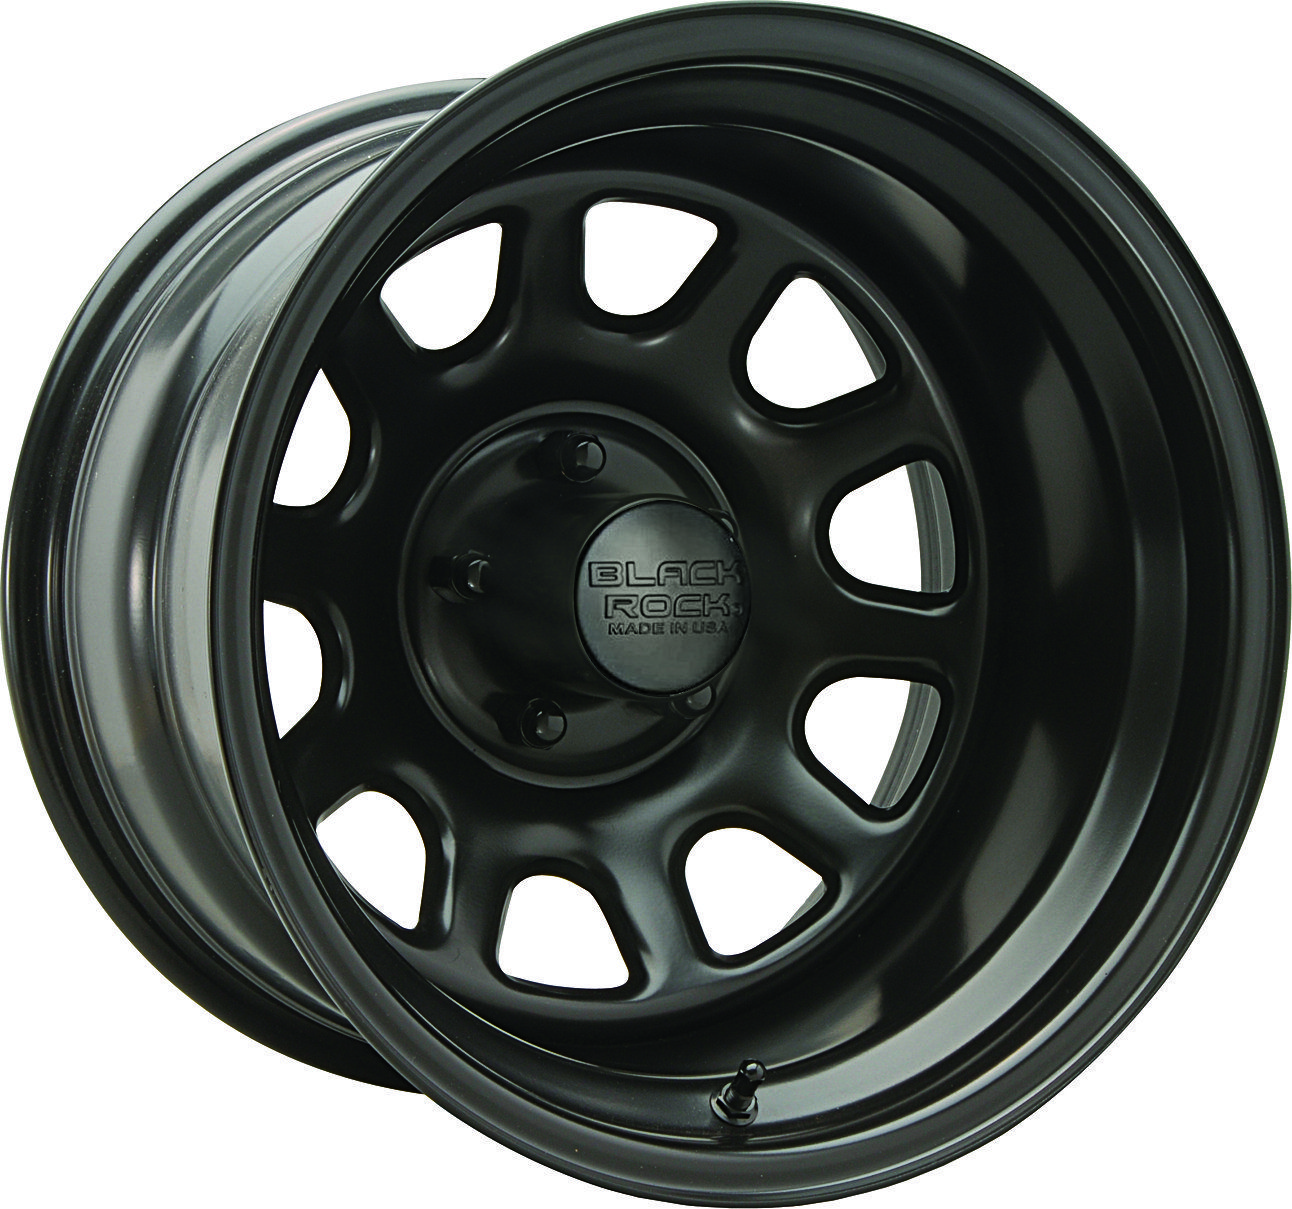 Black Rock Series 942 Type D Steel Wheel In Matte Black For 99 10